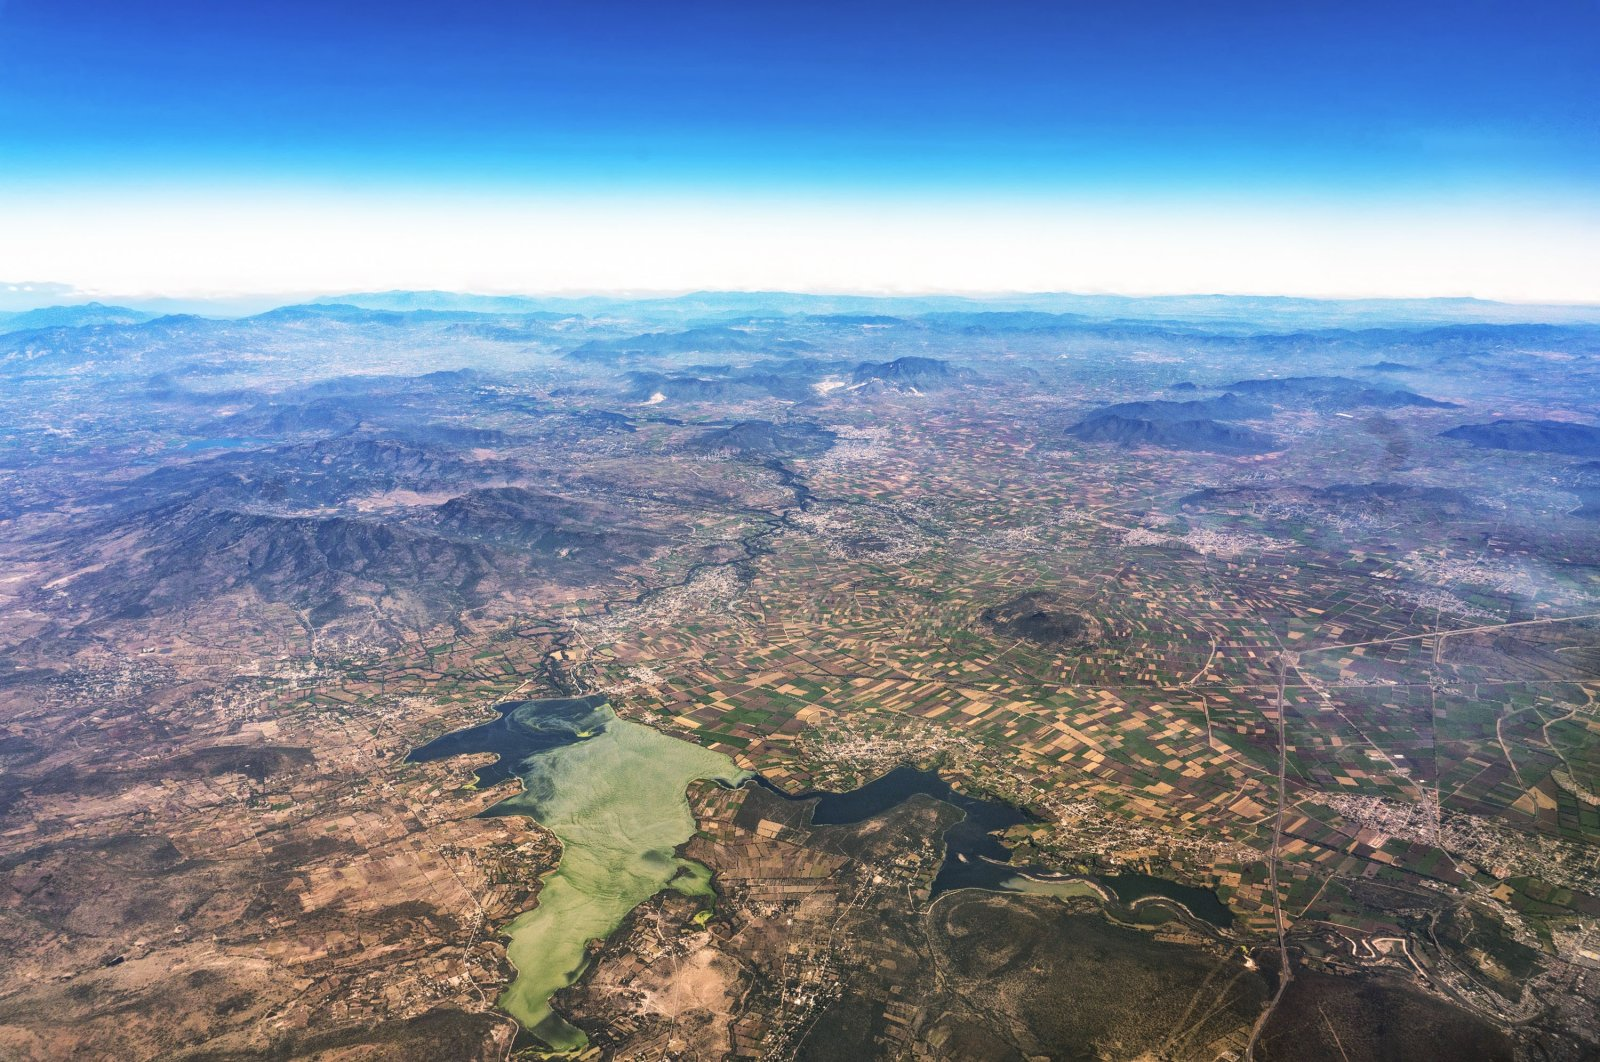 Aerial view of Lake Texcoco, fields and mountains, near Mexico City, Mexico. (Shutterstock Photo)